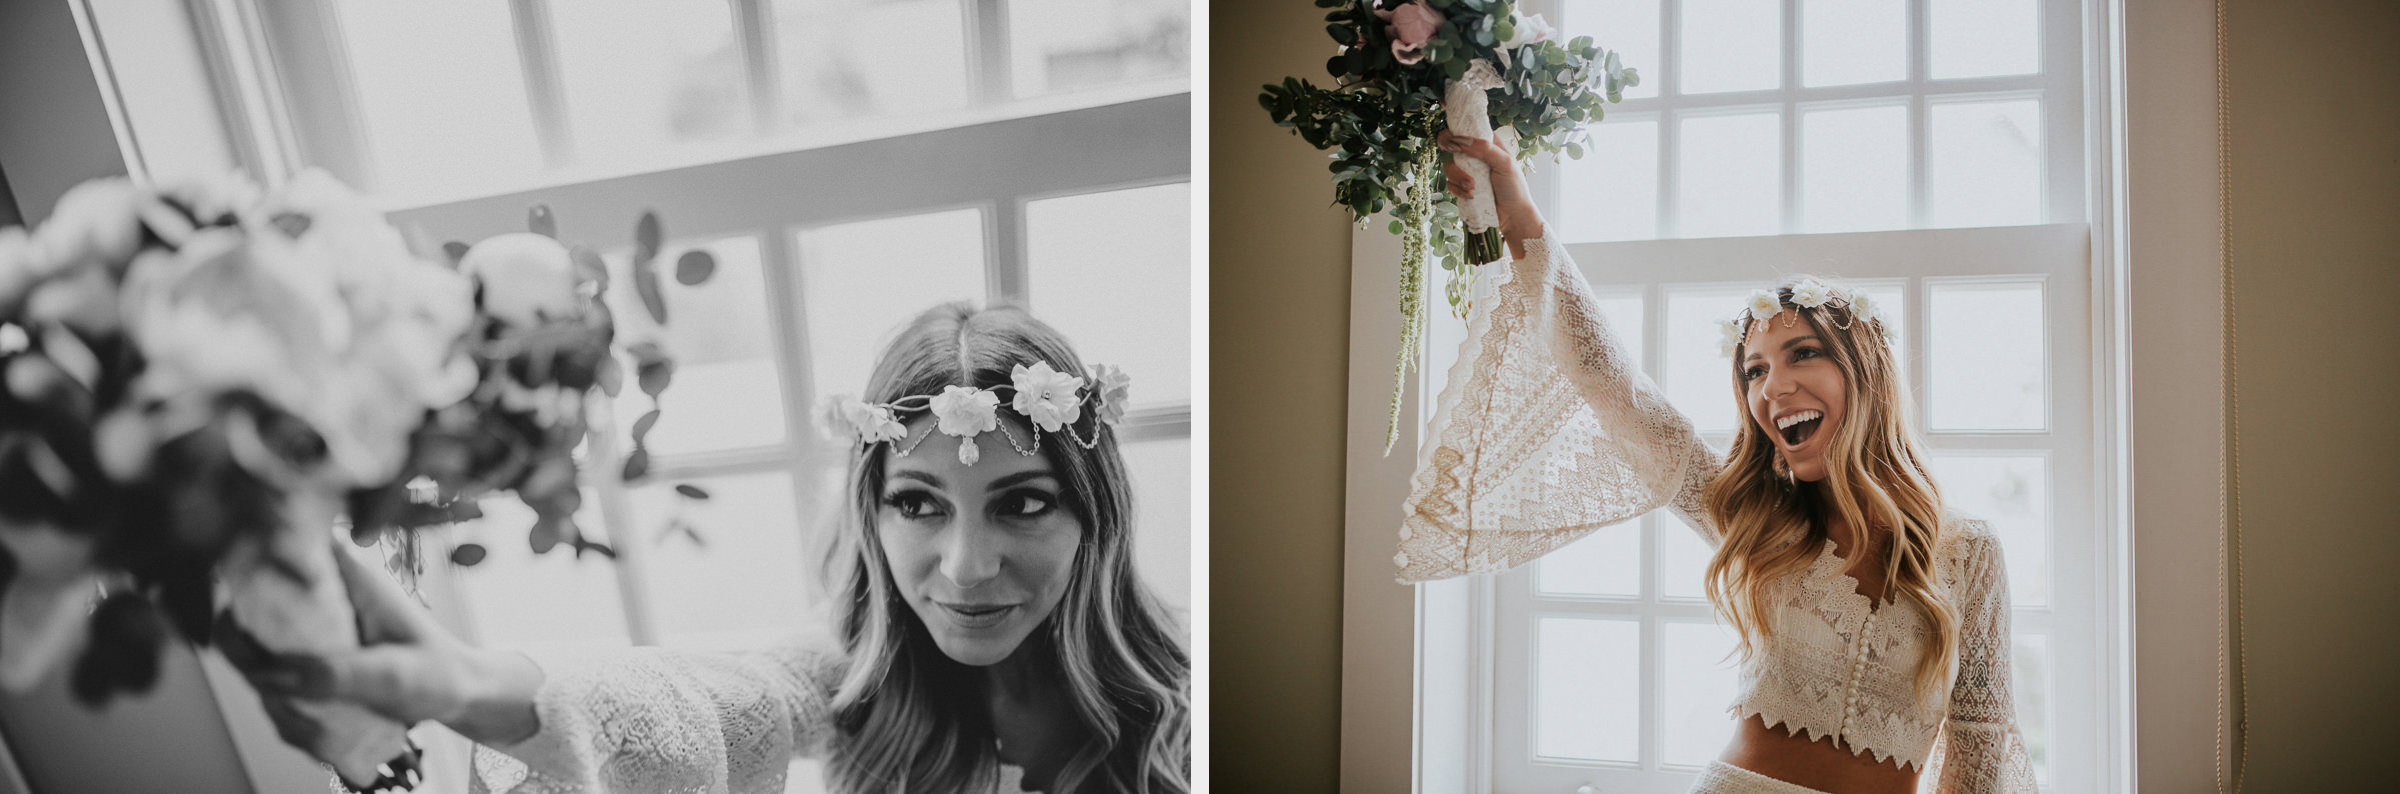 boho chic bride and her bouquet